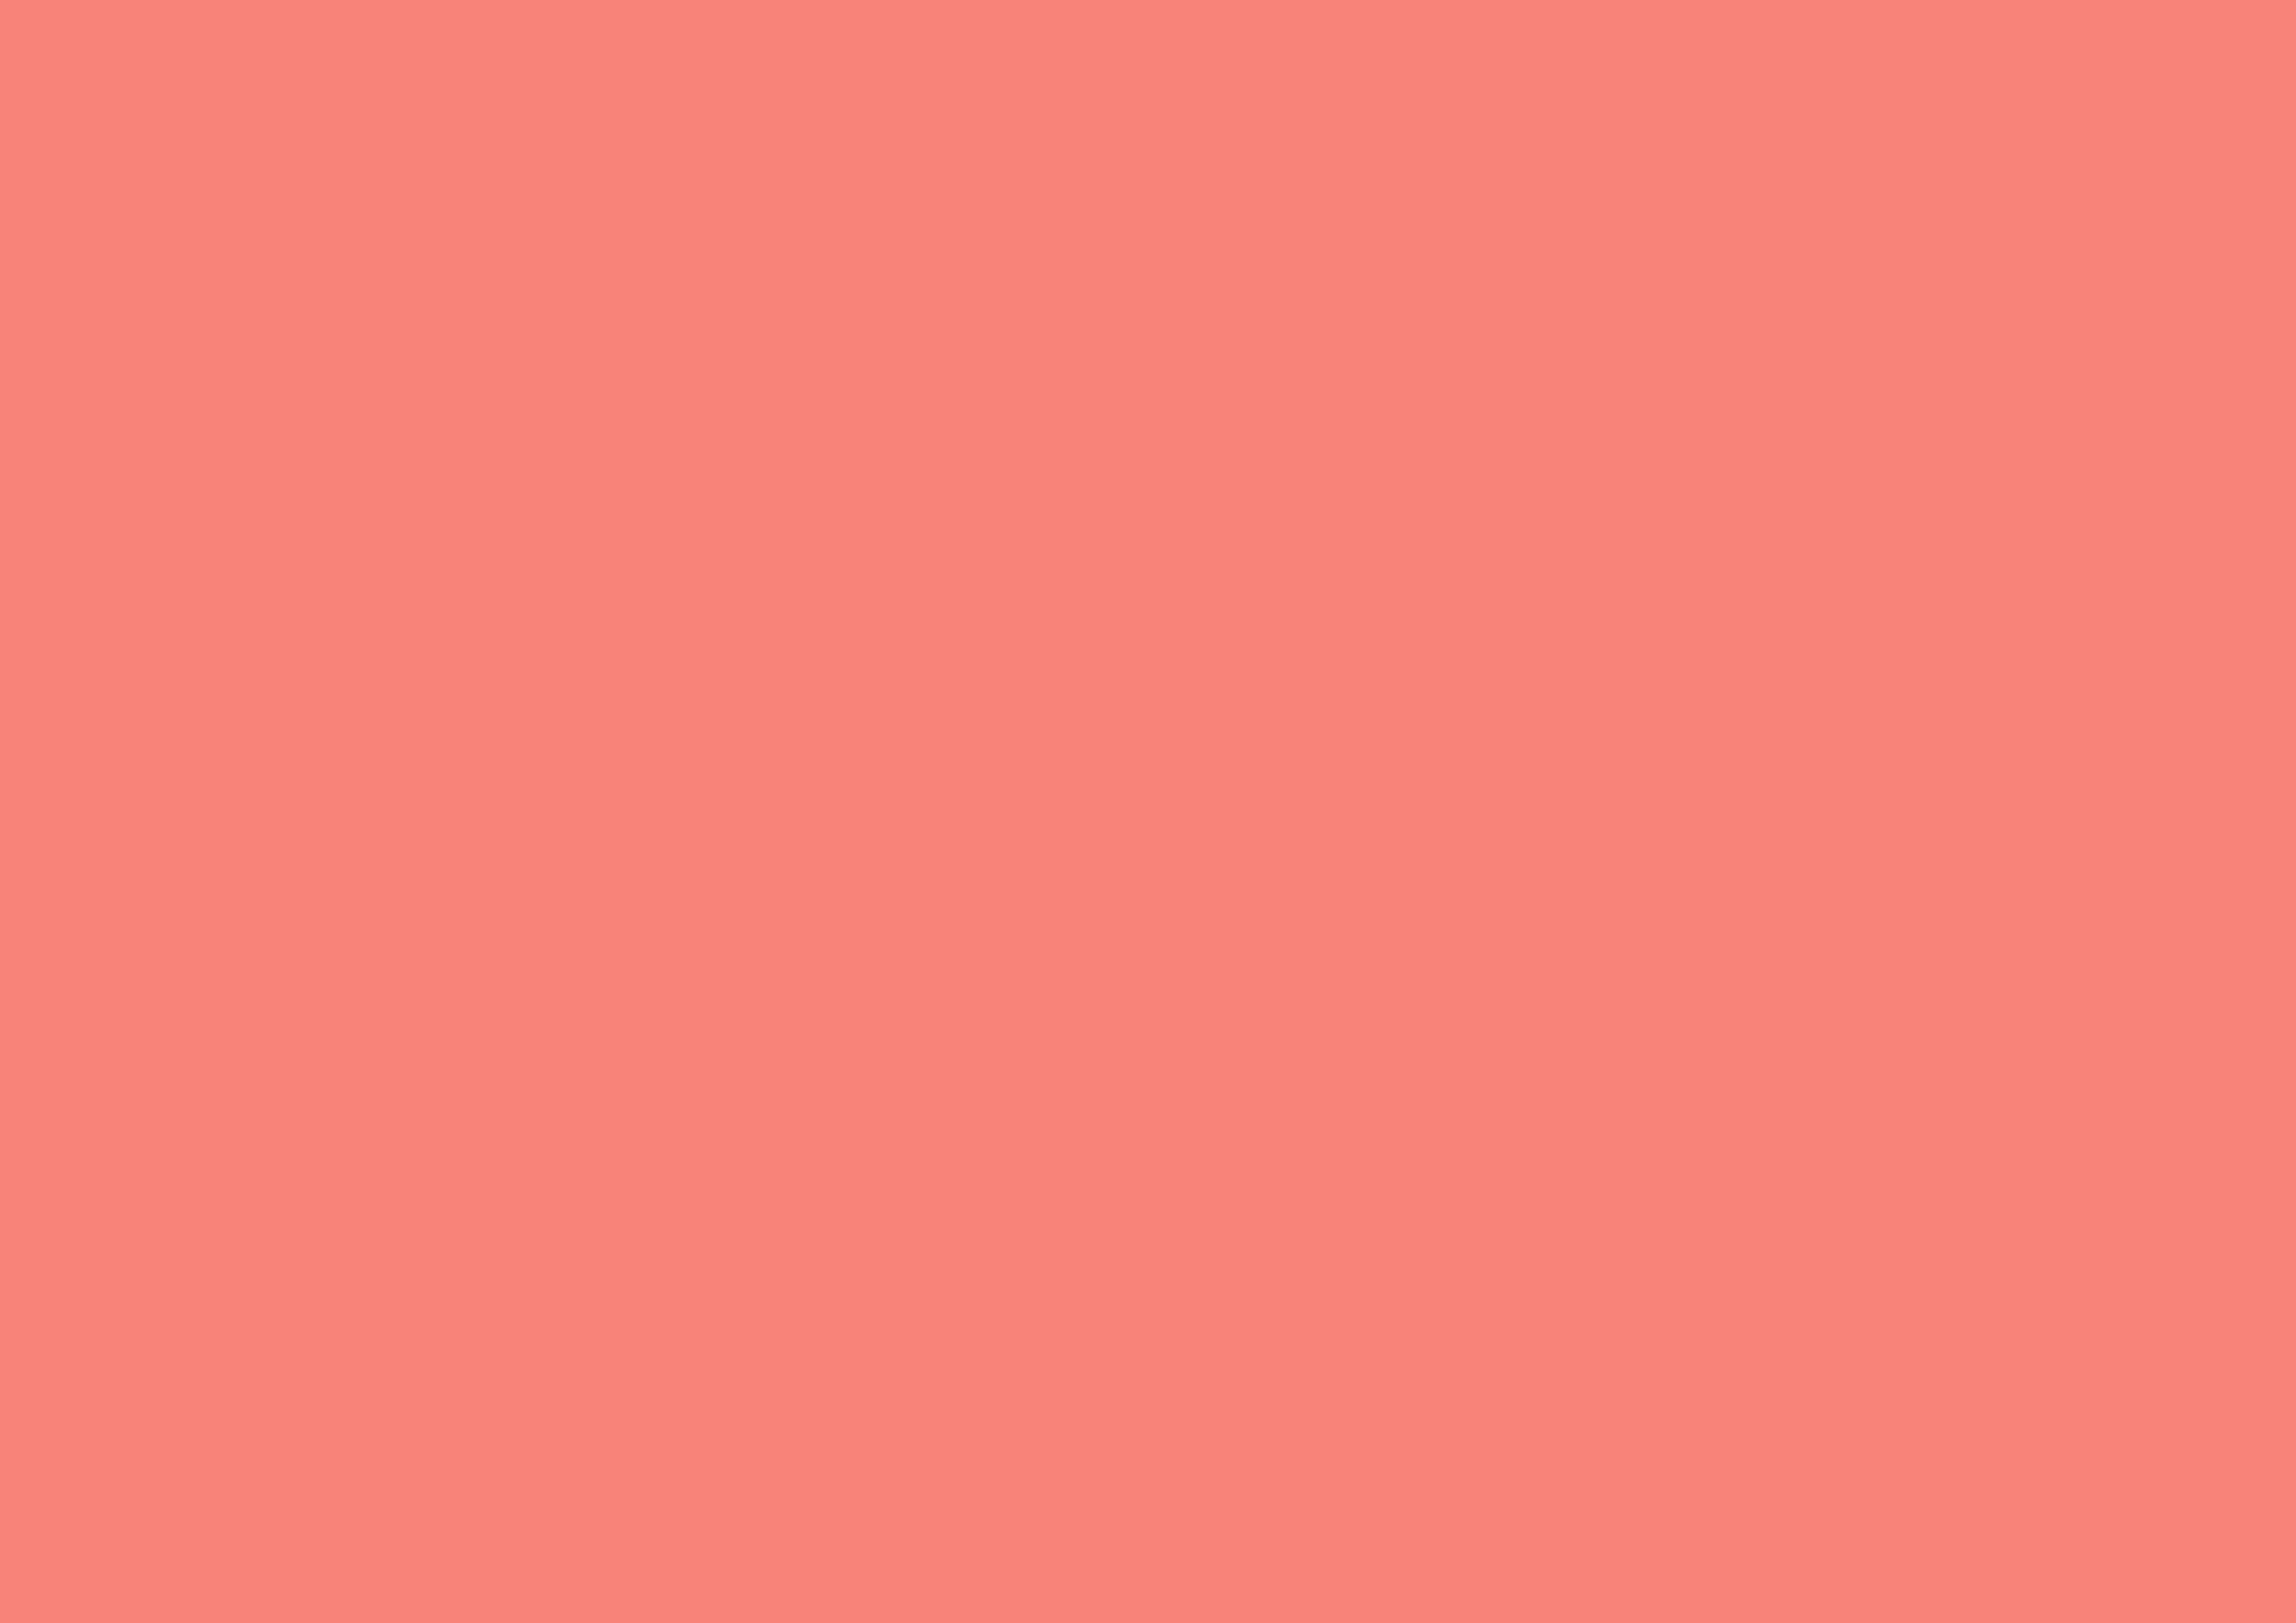 3508x2480 Congo Pink Solid Color Background